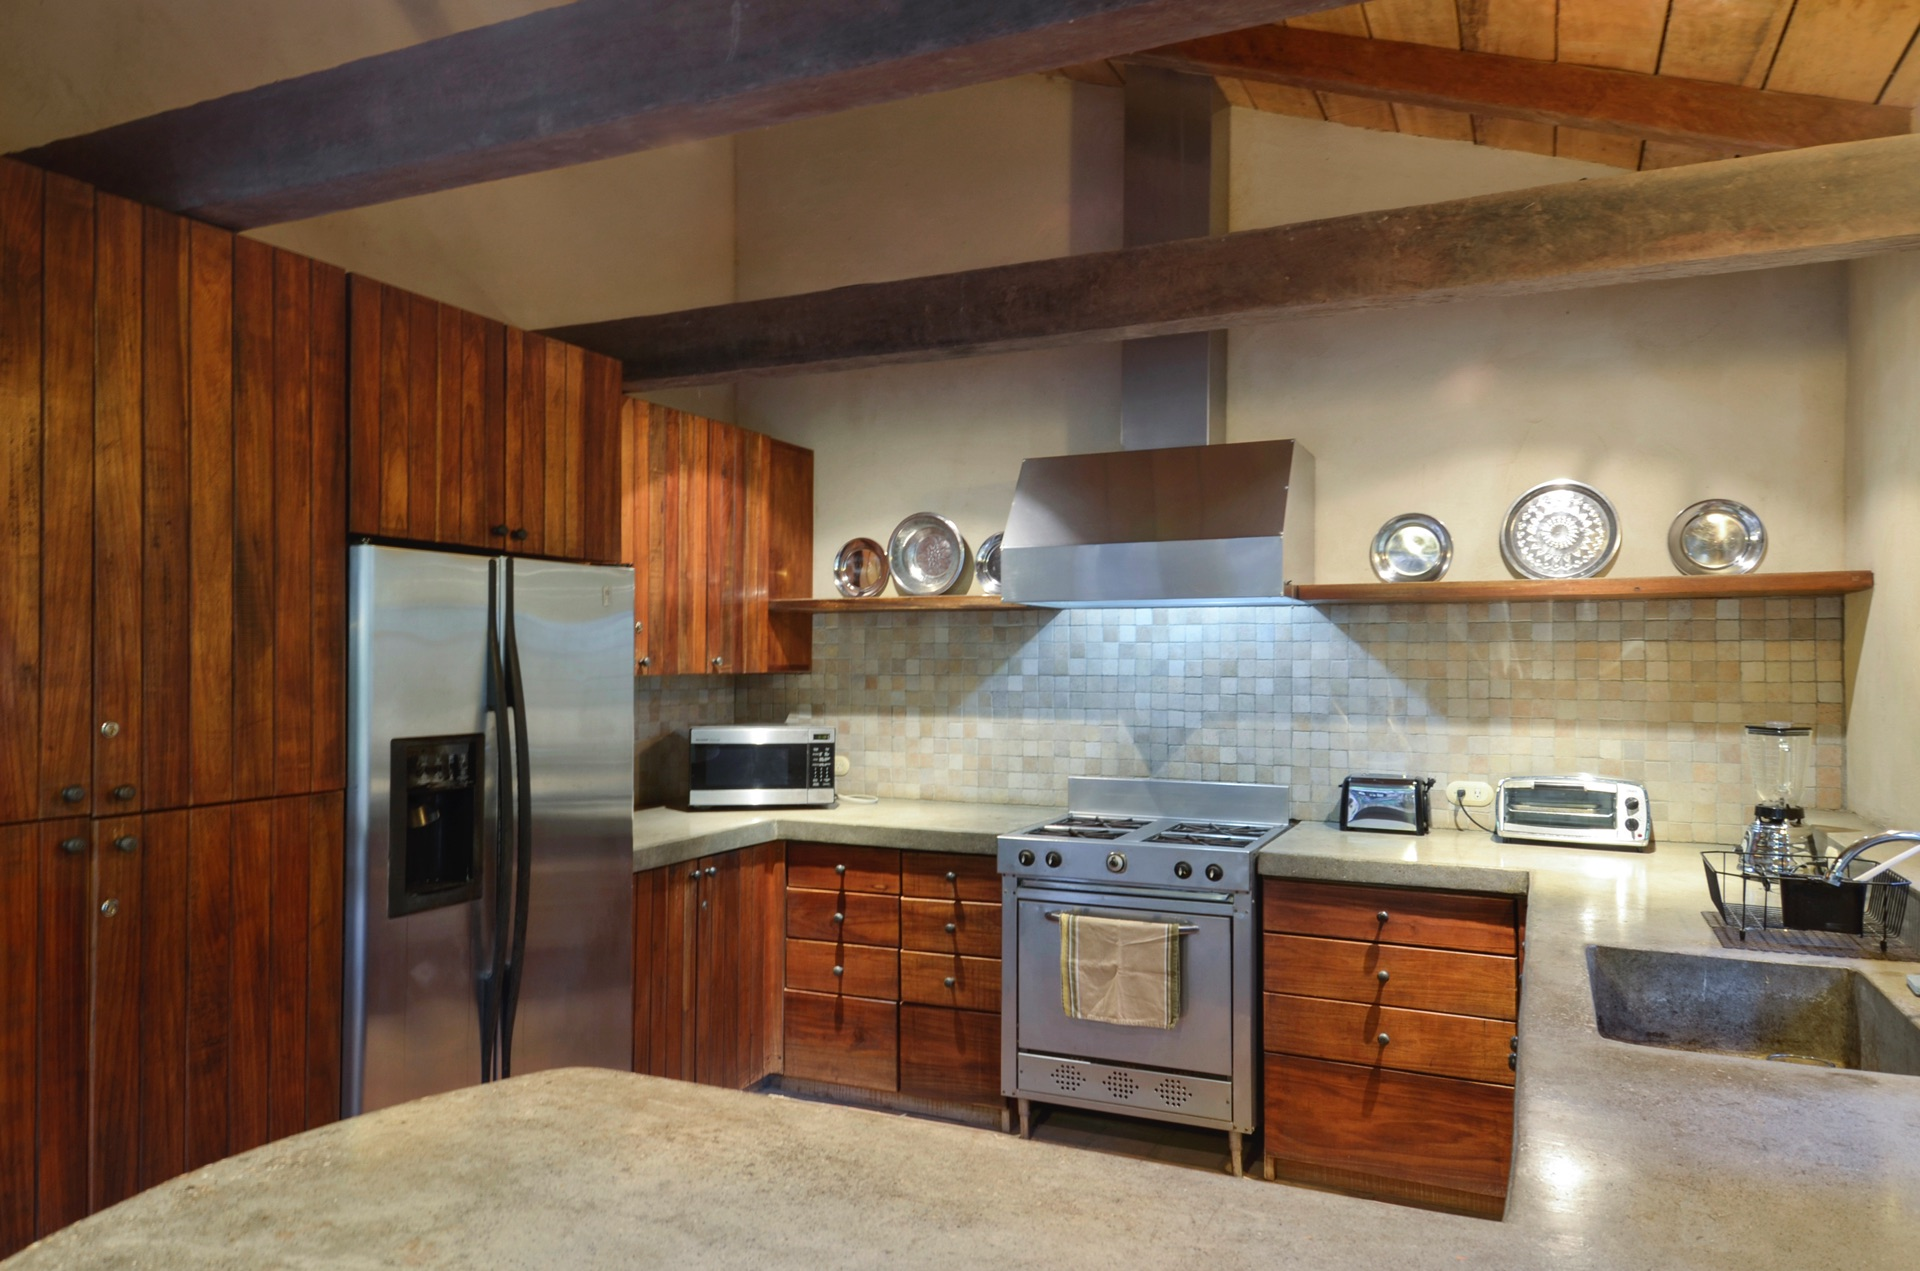 Fully equipped, modern kitchen